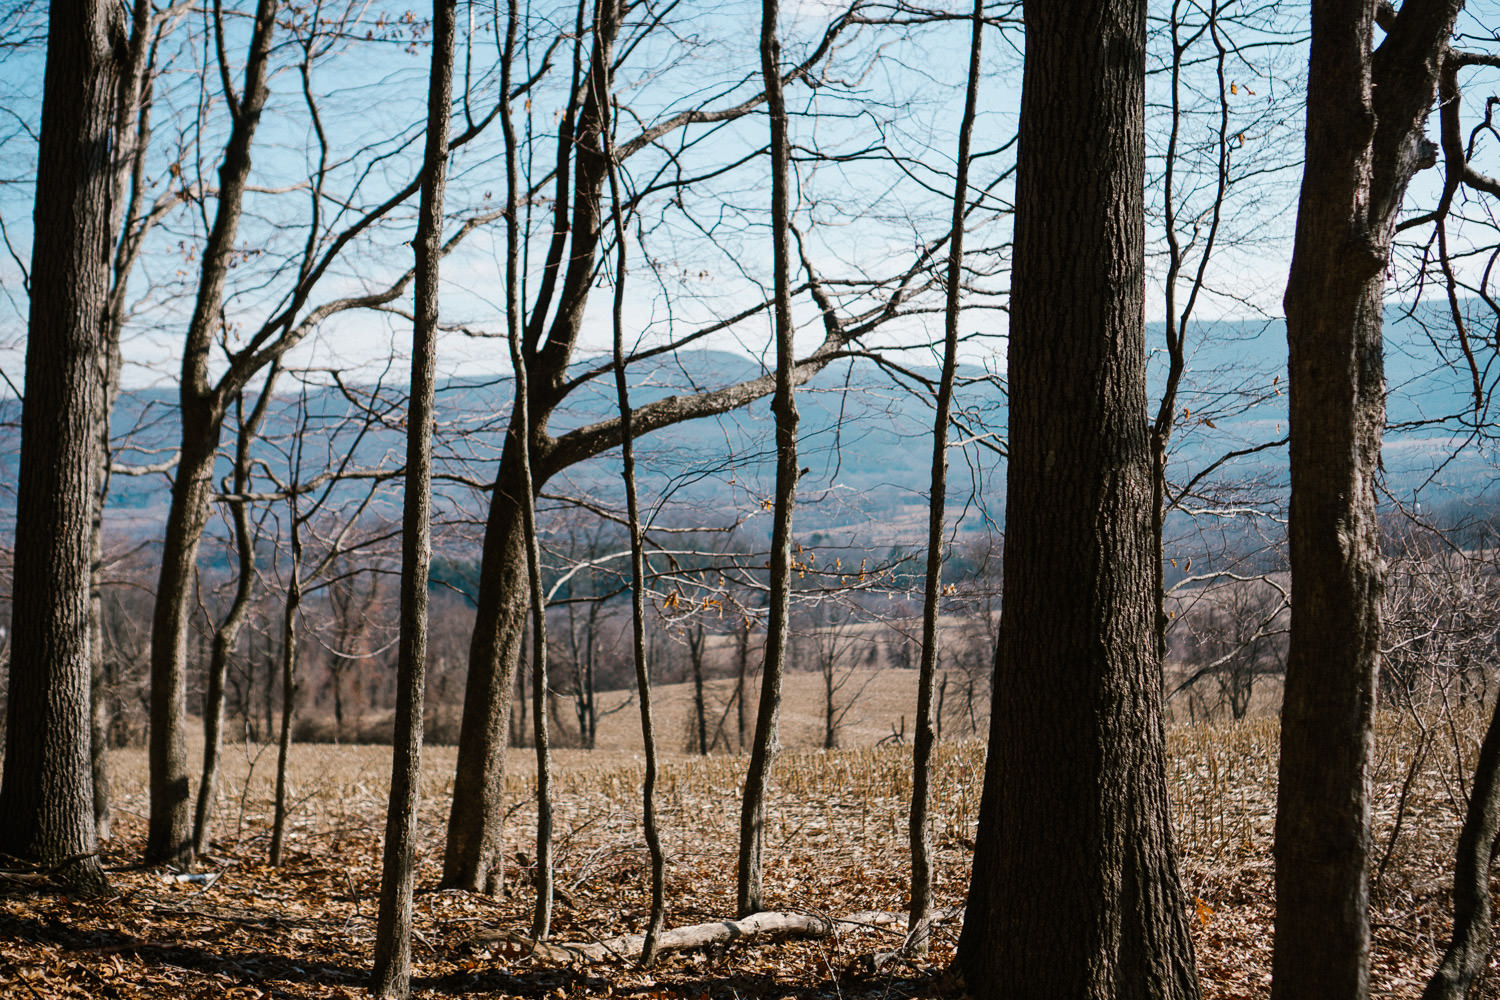 A wooded area in the Berkshires.